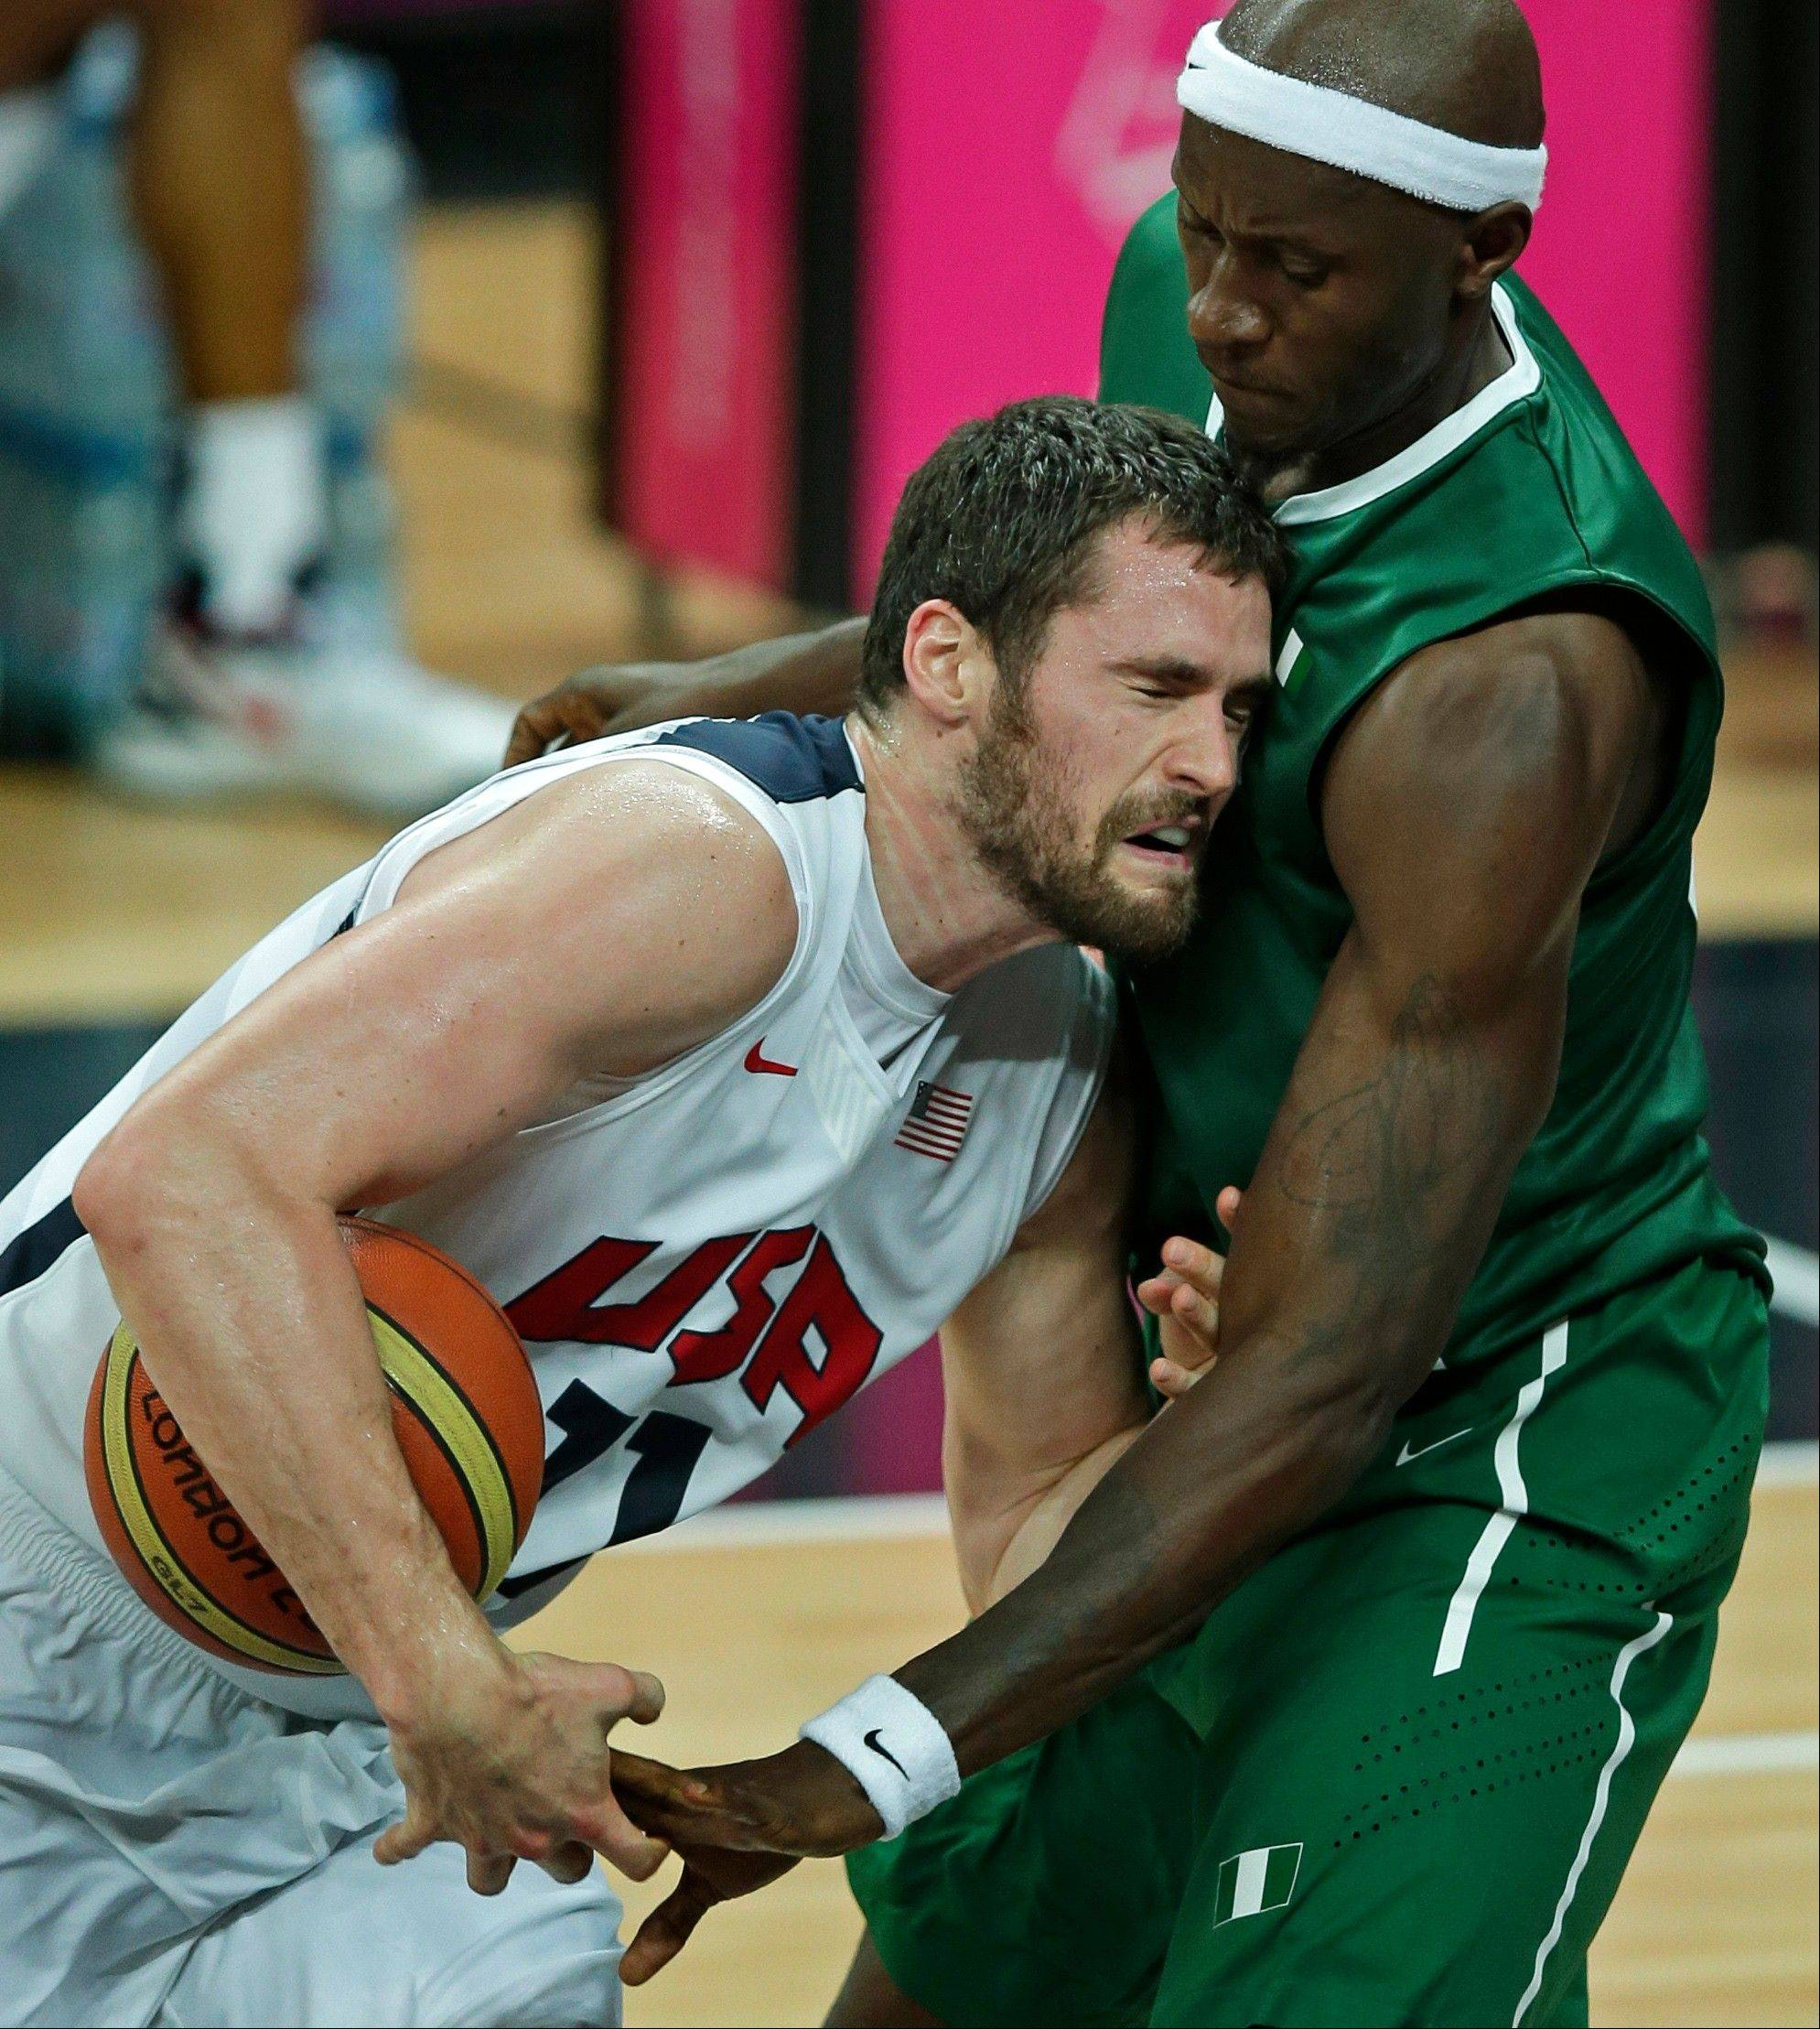 Nigeria's Richard Oruche, right, tries to steal the ball from United States' Kevin Love during a men's basketball game Thursday at the 2012 Summer Olympics.